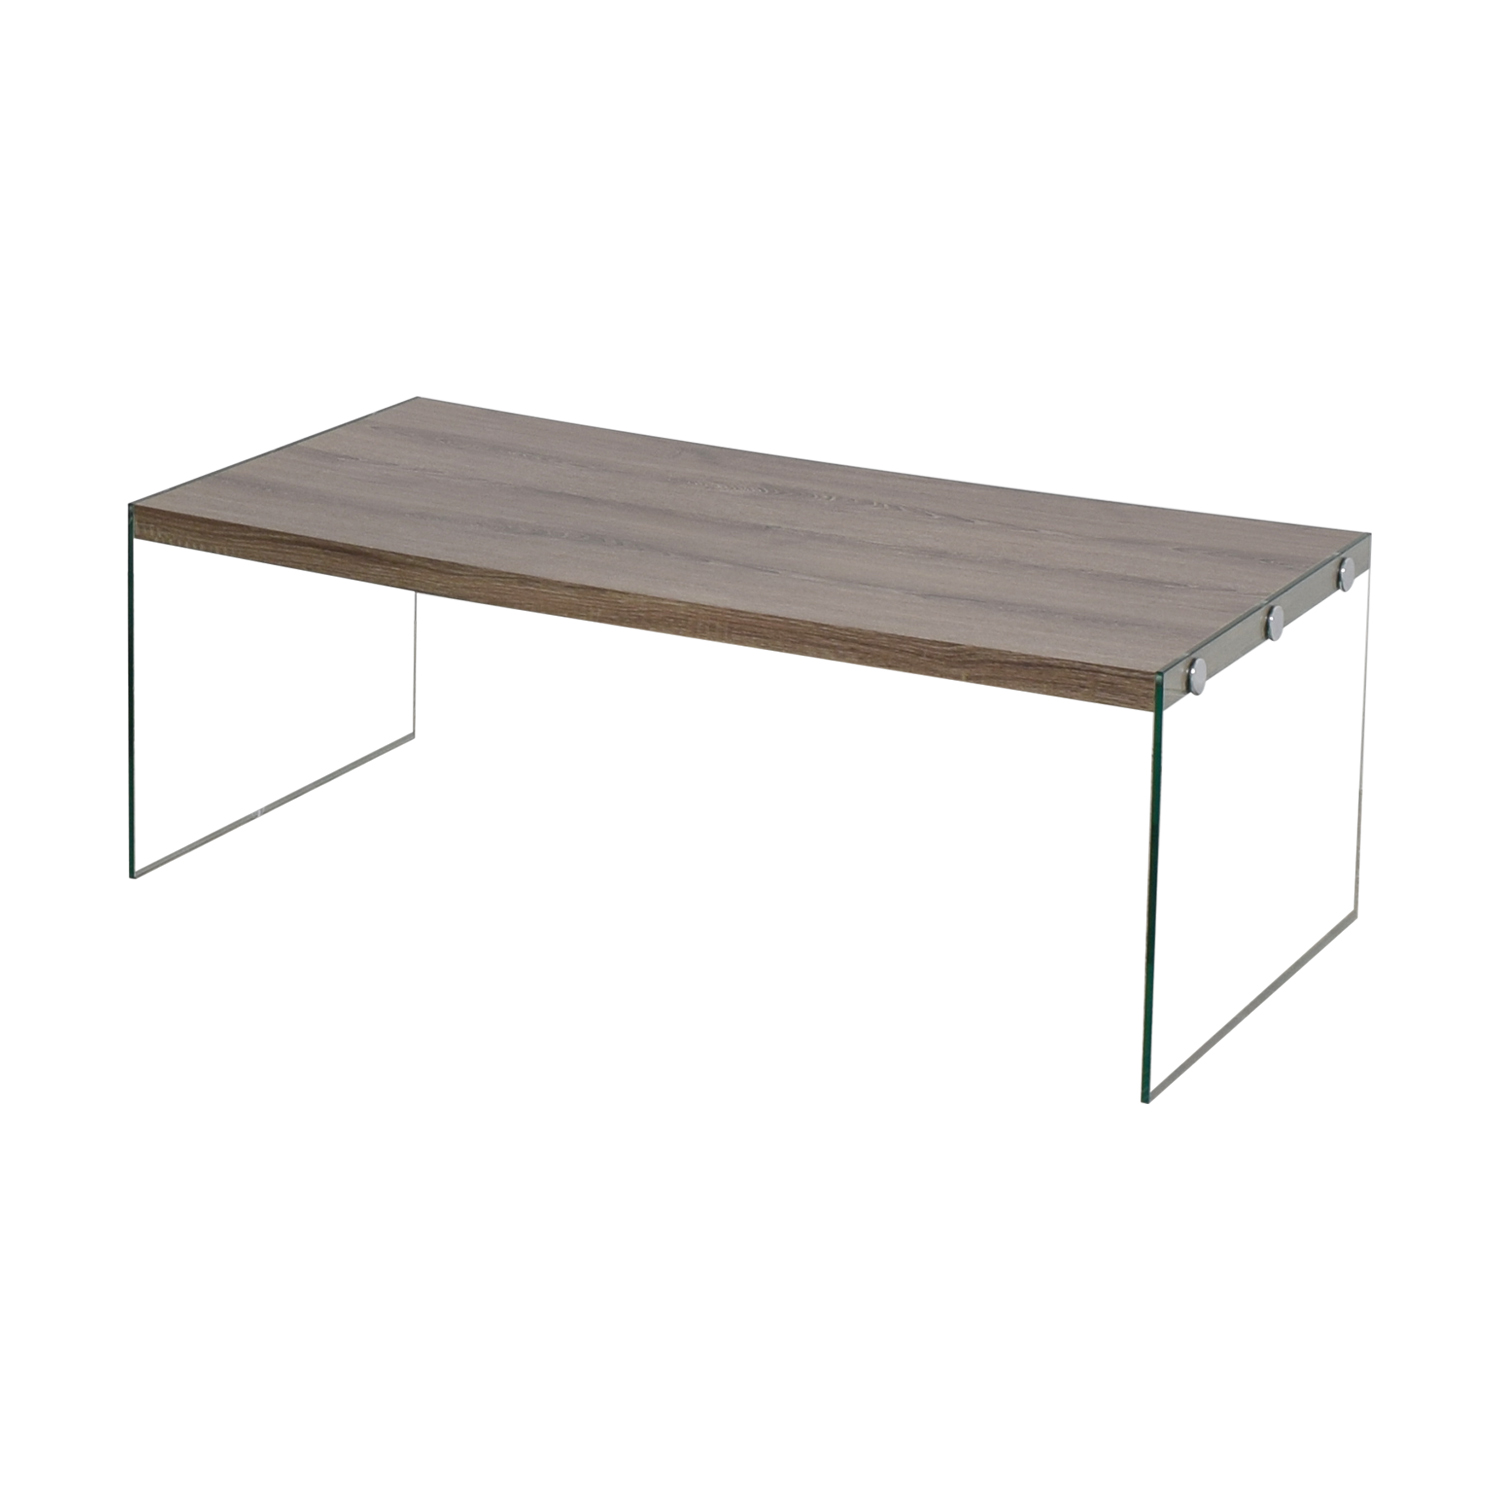 Rustic Wood And Glass Coffee Table 80 Off Monarch Specialties Monarch Specialties Grey